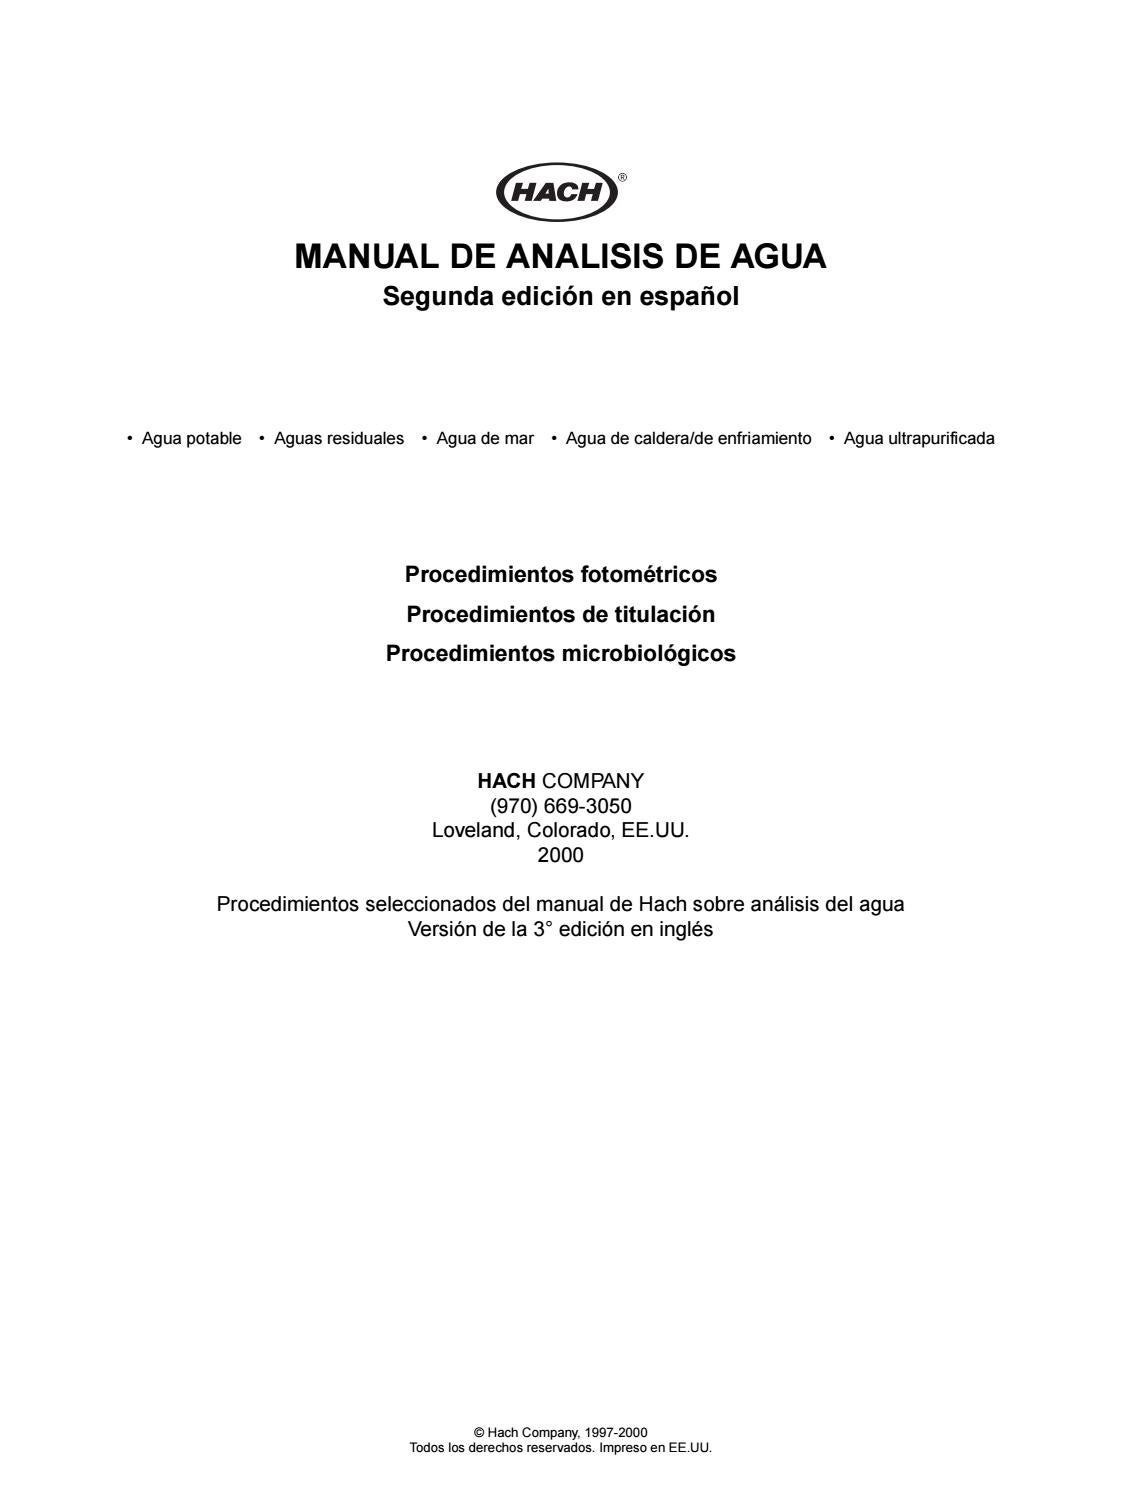 Water analysis manual spanish manual de analisis de agua by Cesar ...